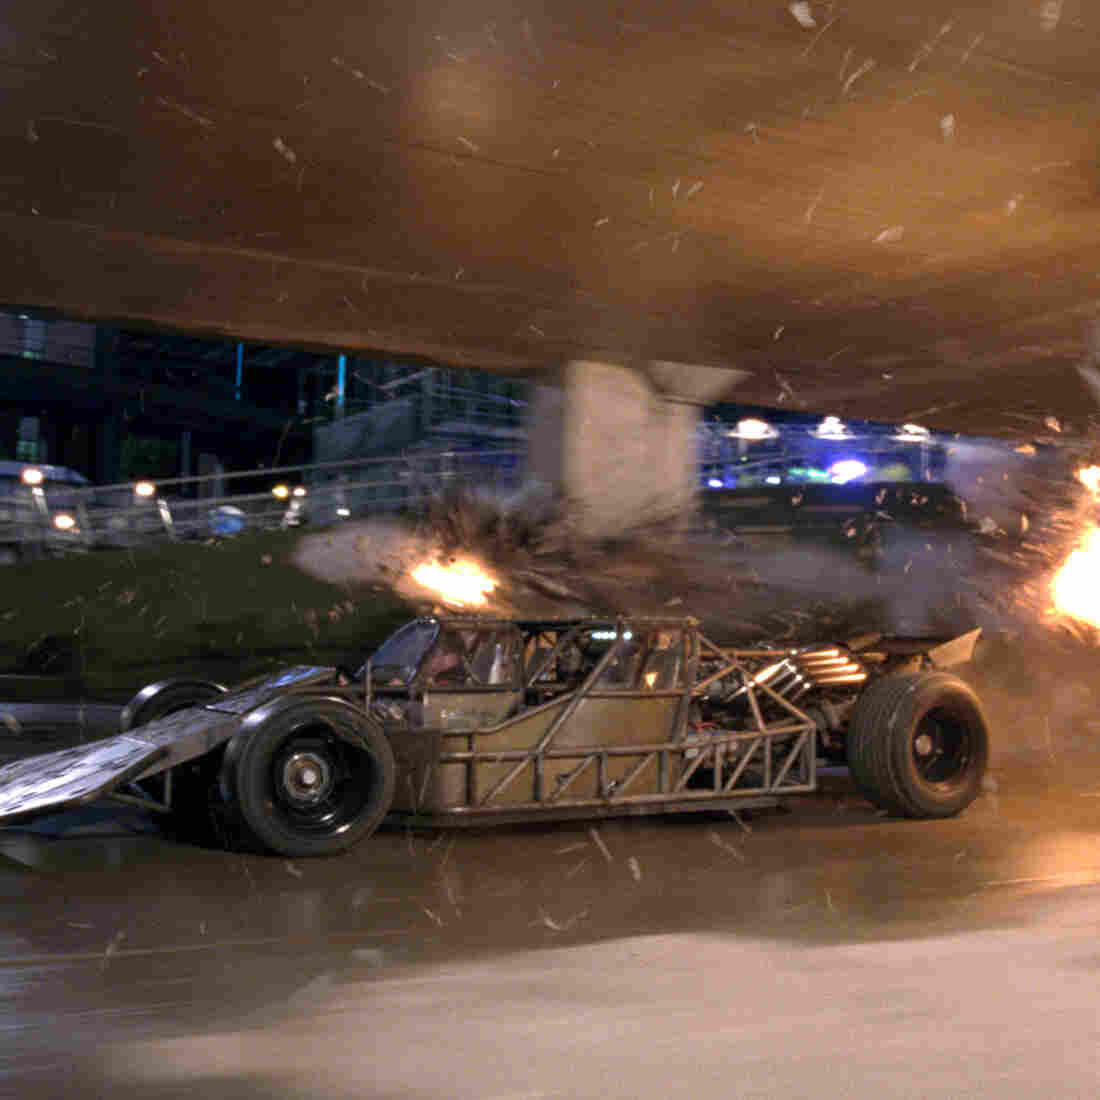 This little skeleton-of-the-Batmobile-y looking thing is actually one of the vehicles on display in Fast & Furious 6.